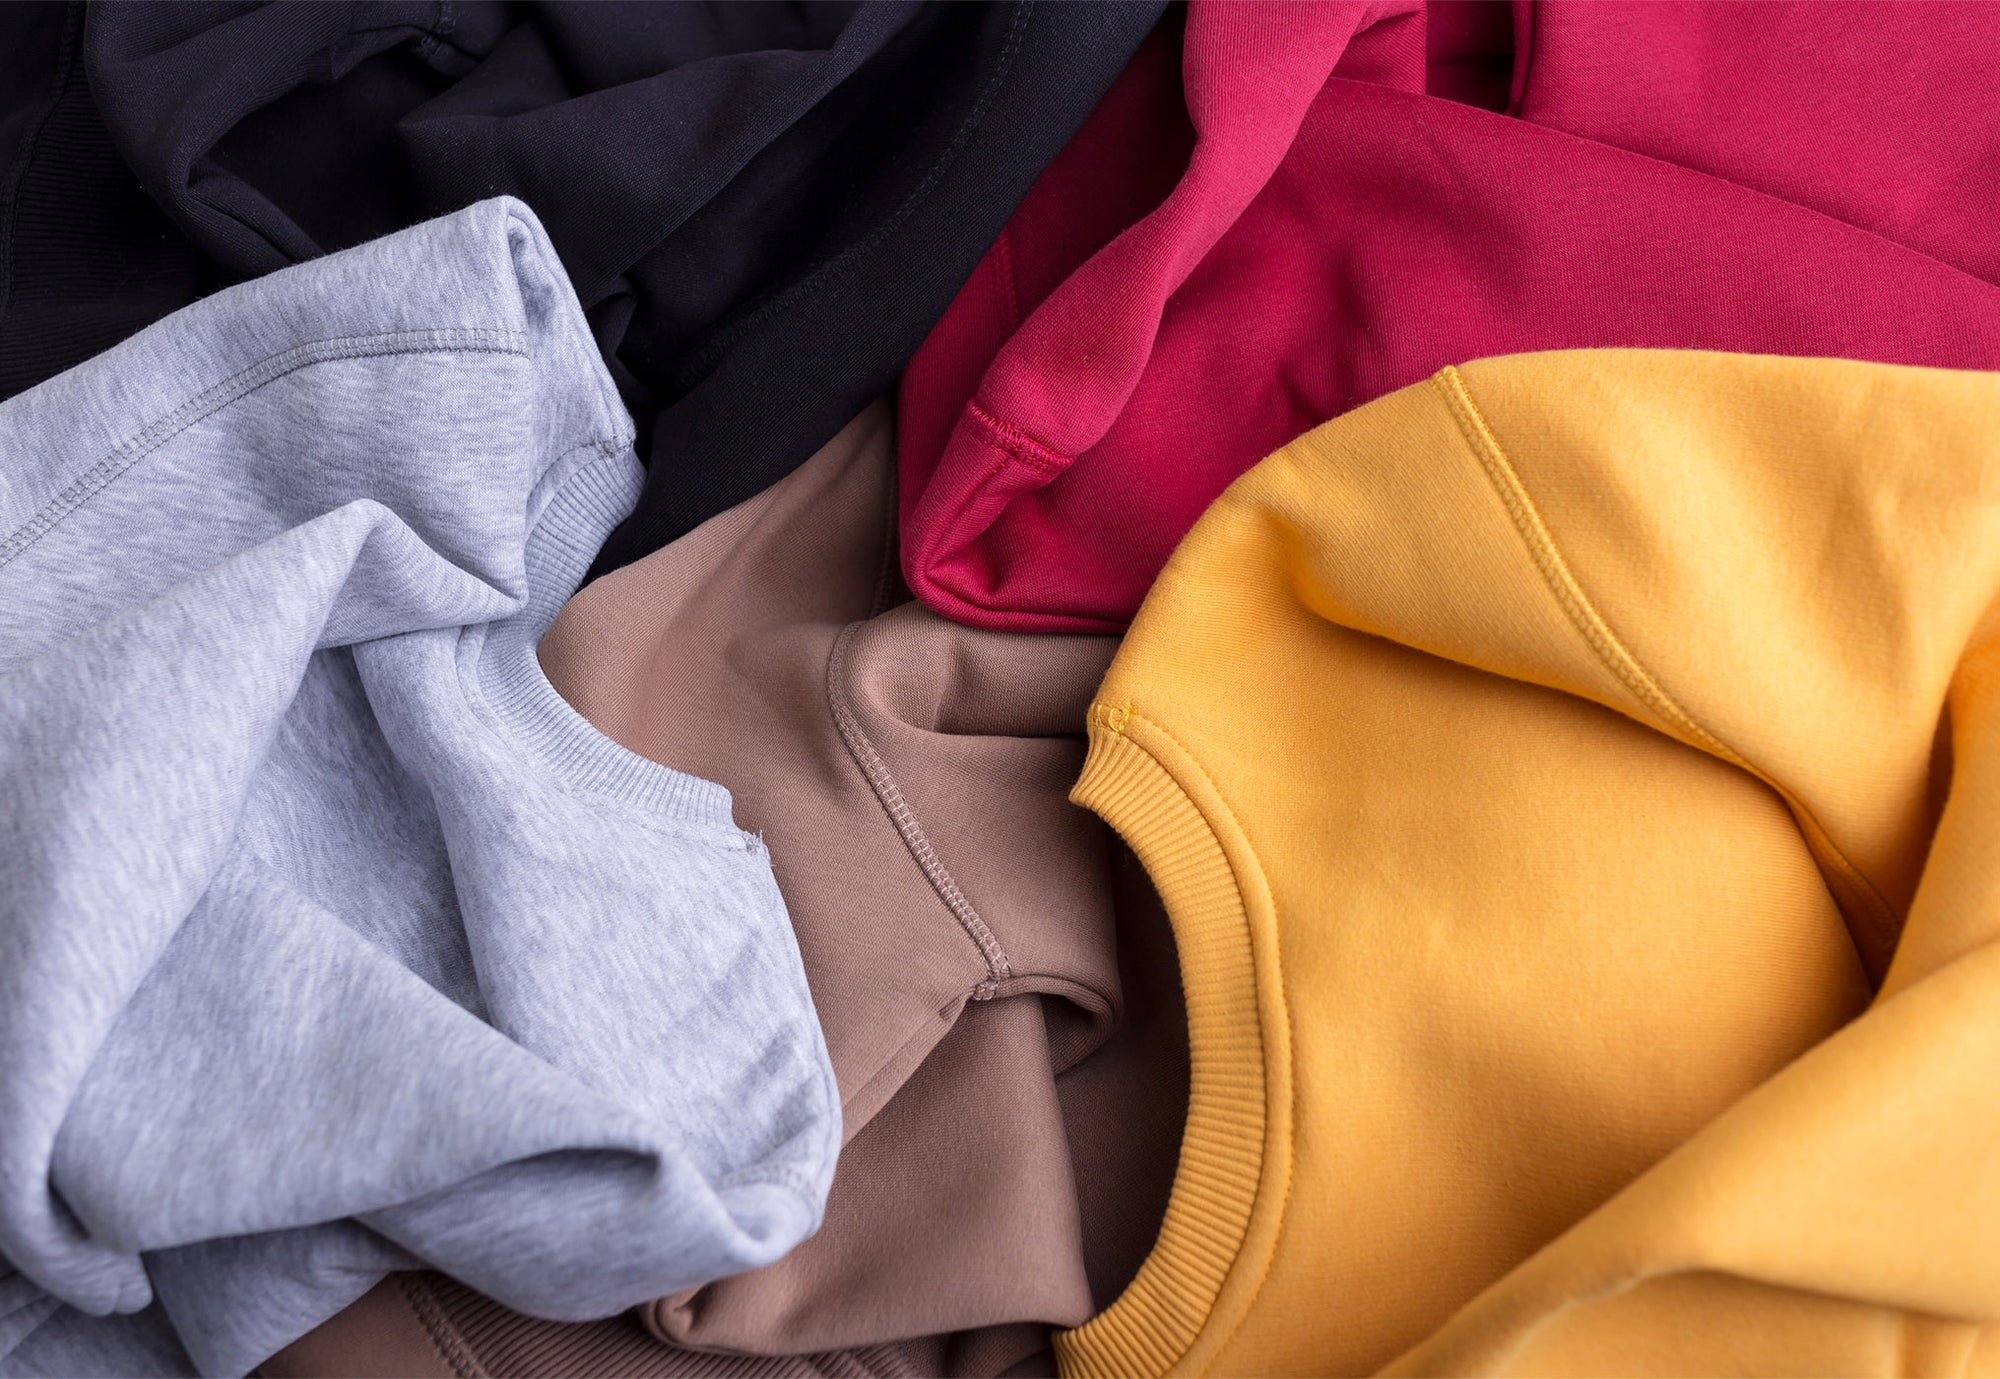 Sweatshirts 101: All You Need to Know